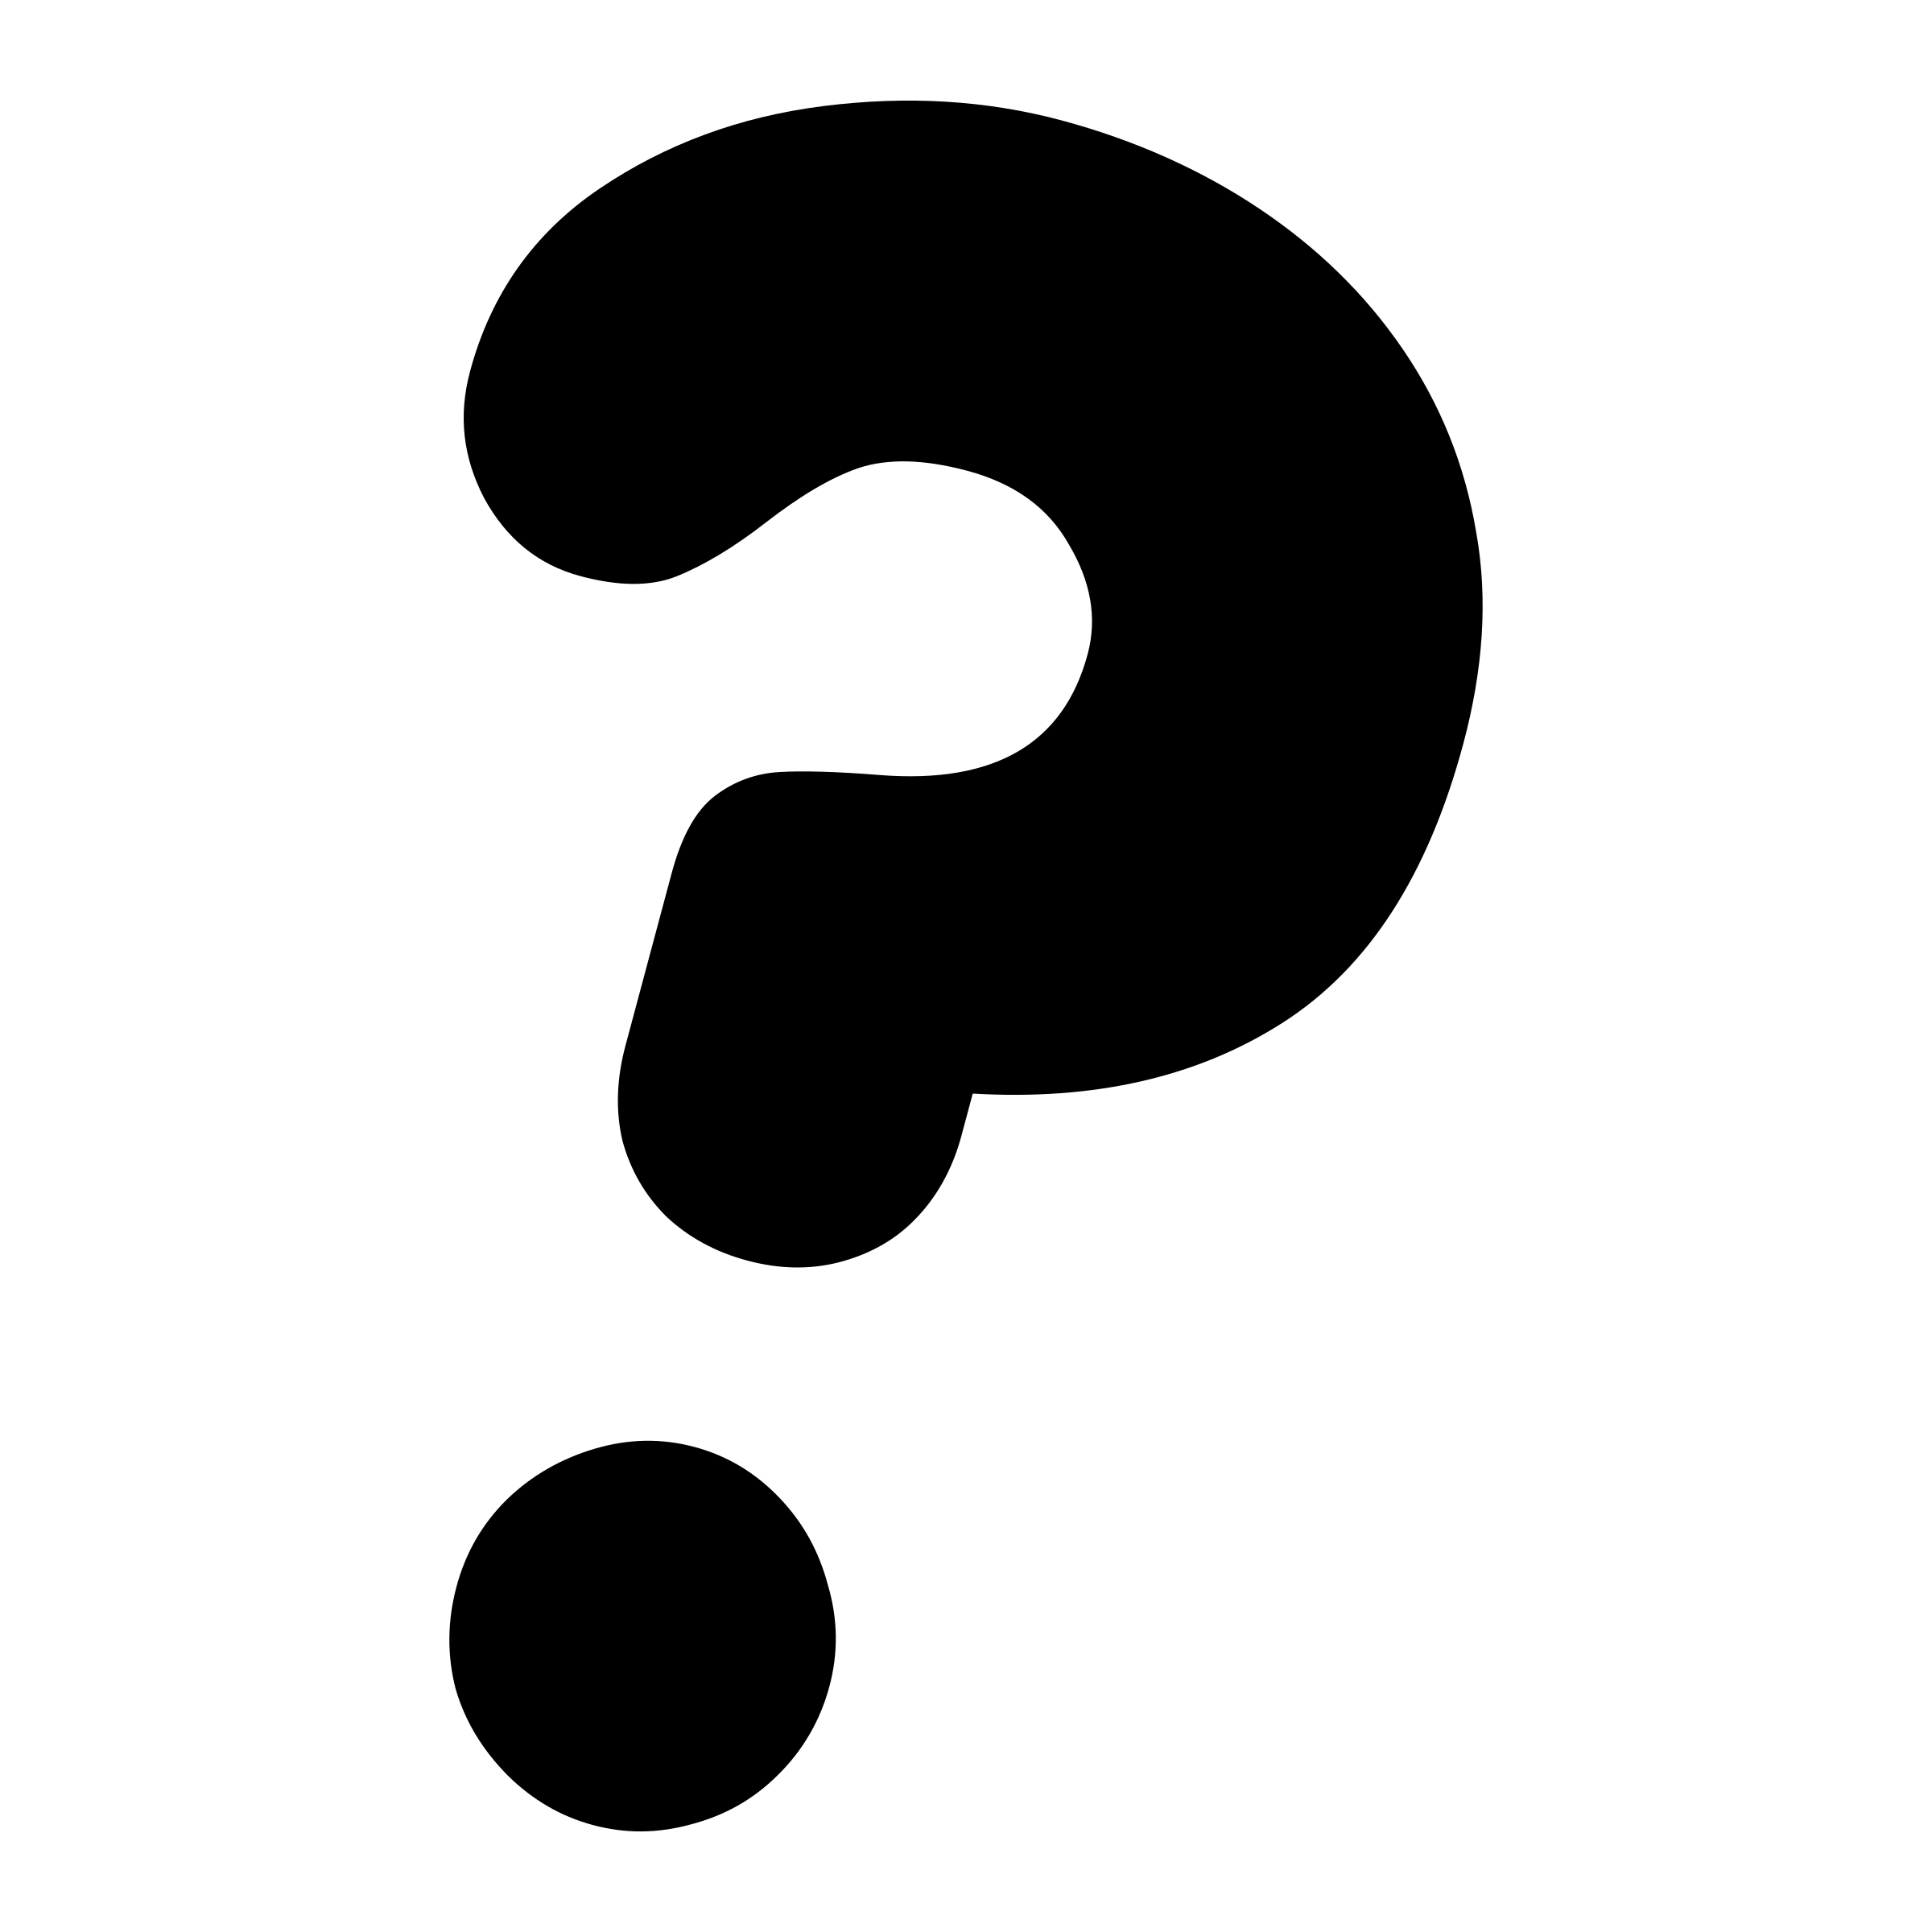 Clipart pencil sign. Question mark and in